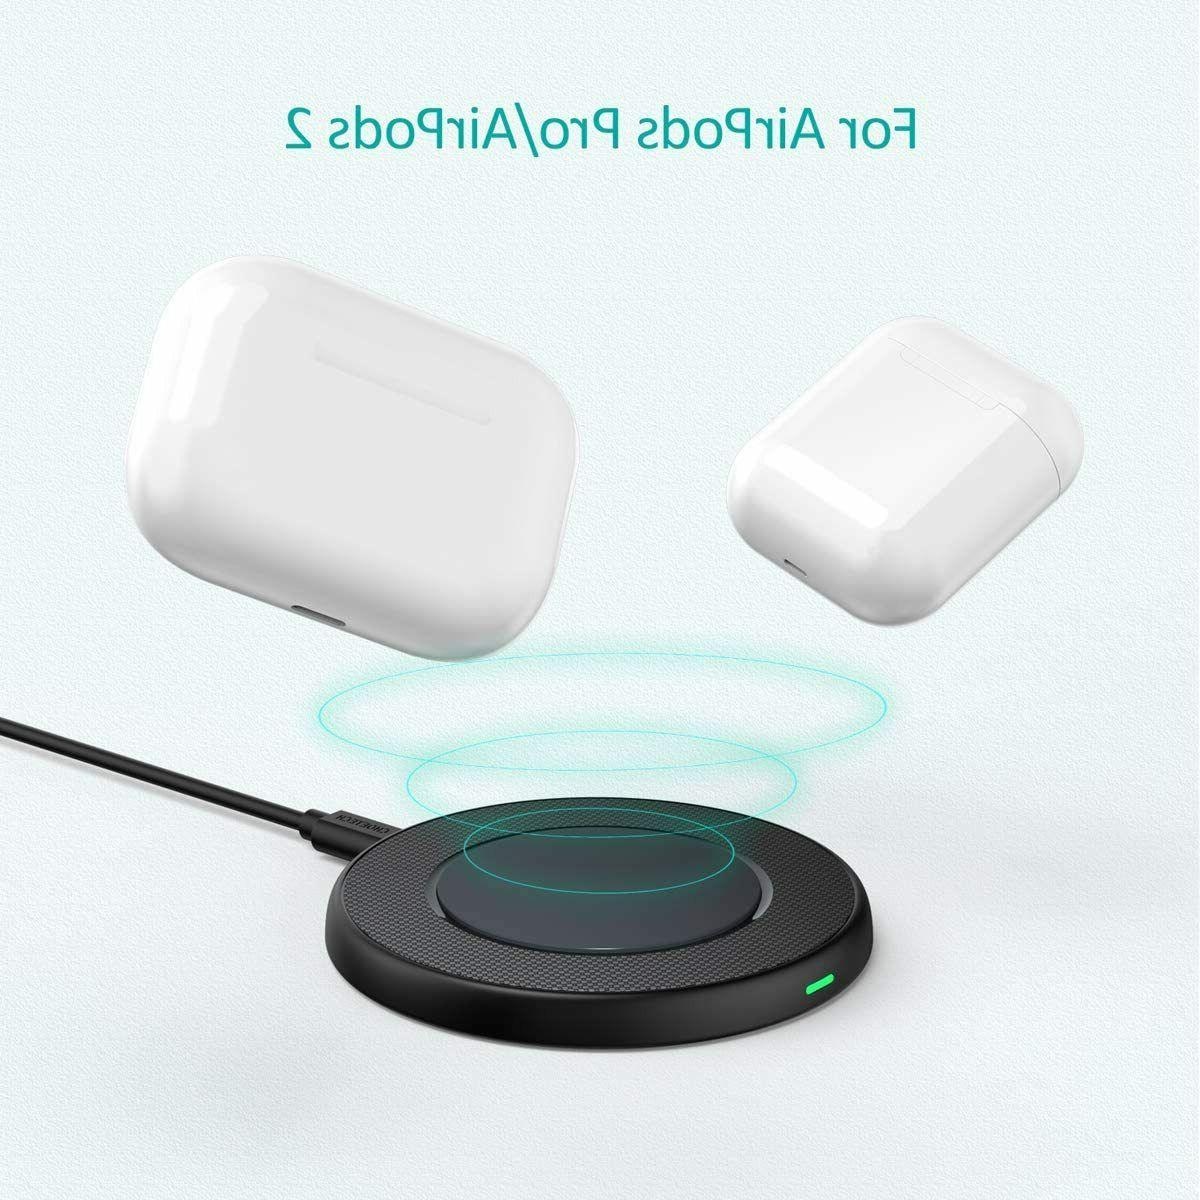 CHOETECH Wireless 15W Max Charging Pad with QC Adapte